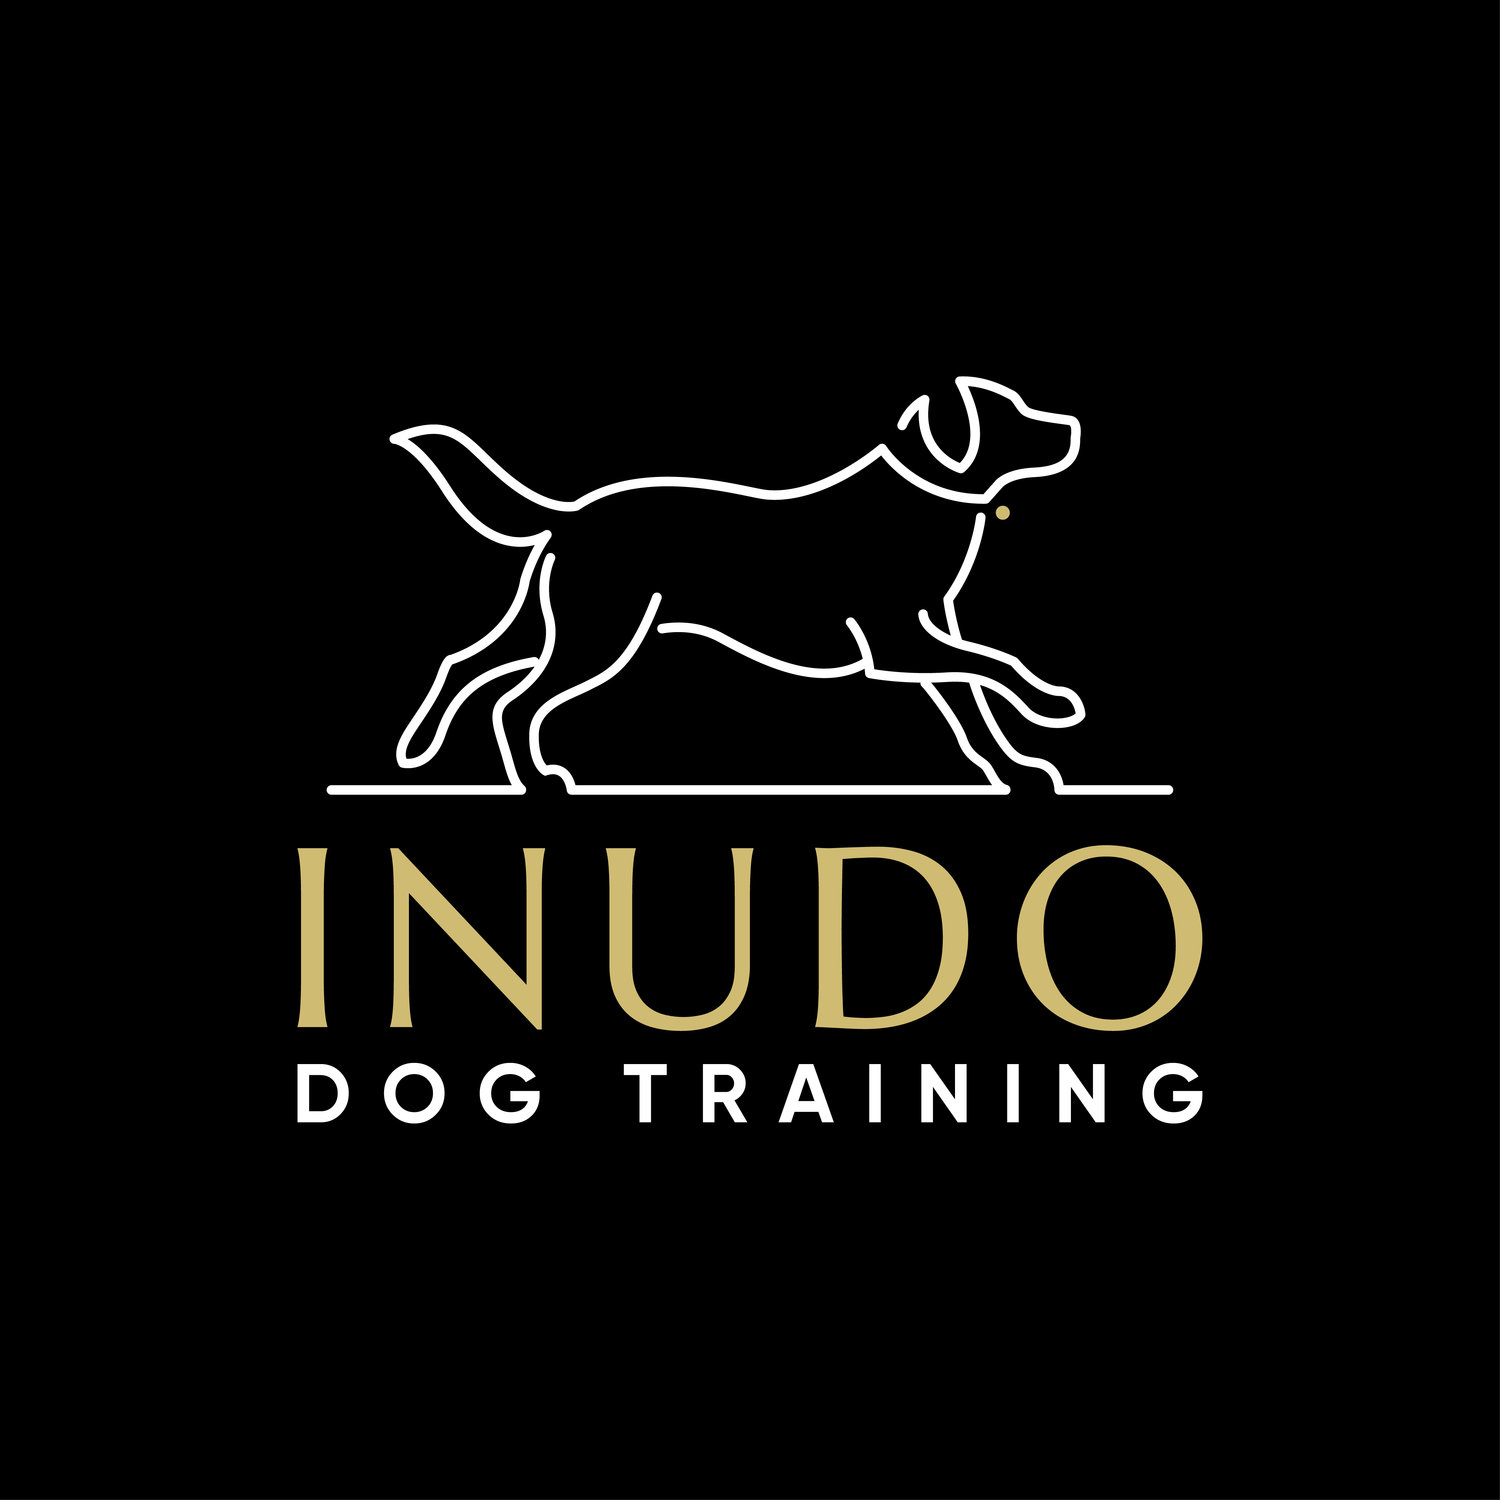 Inudo Dog Training